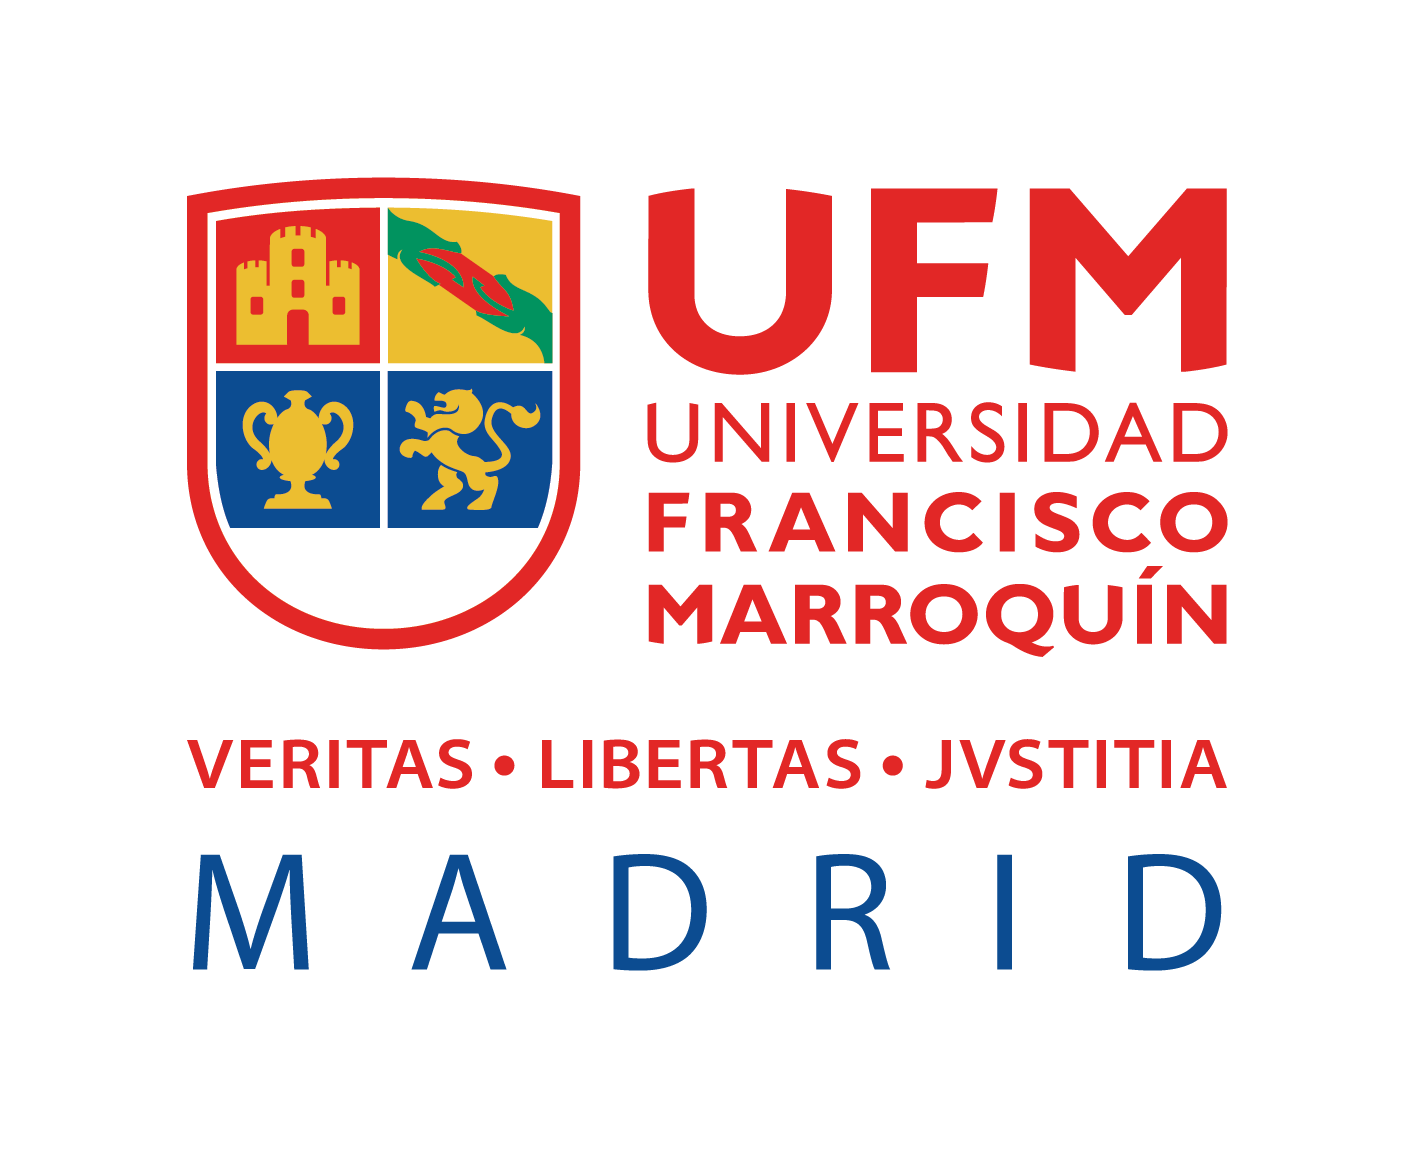 Universidad Francisco Marroquin Madrid